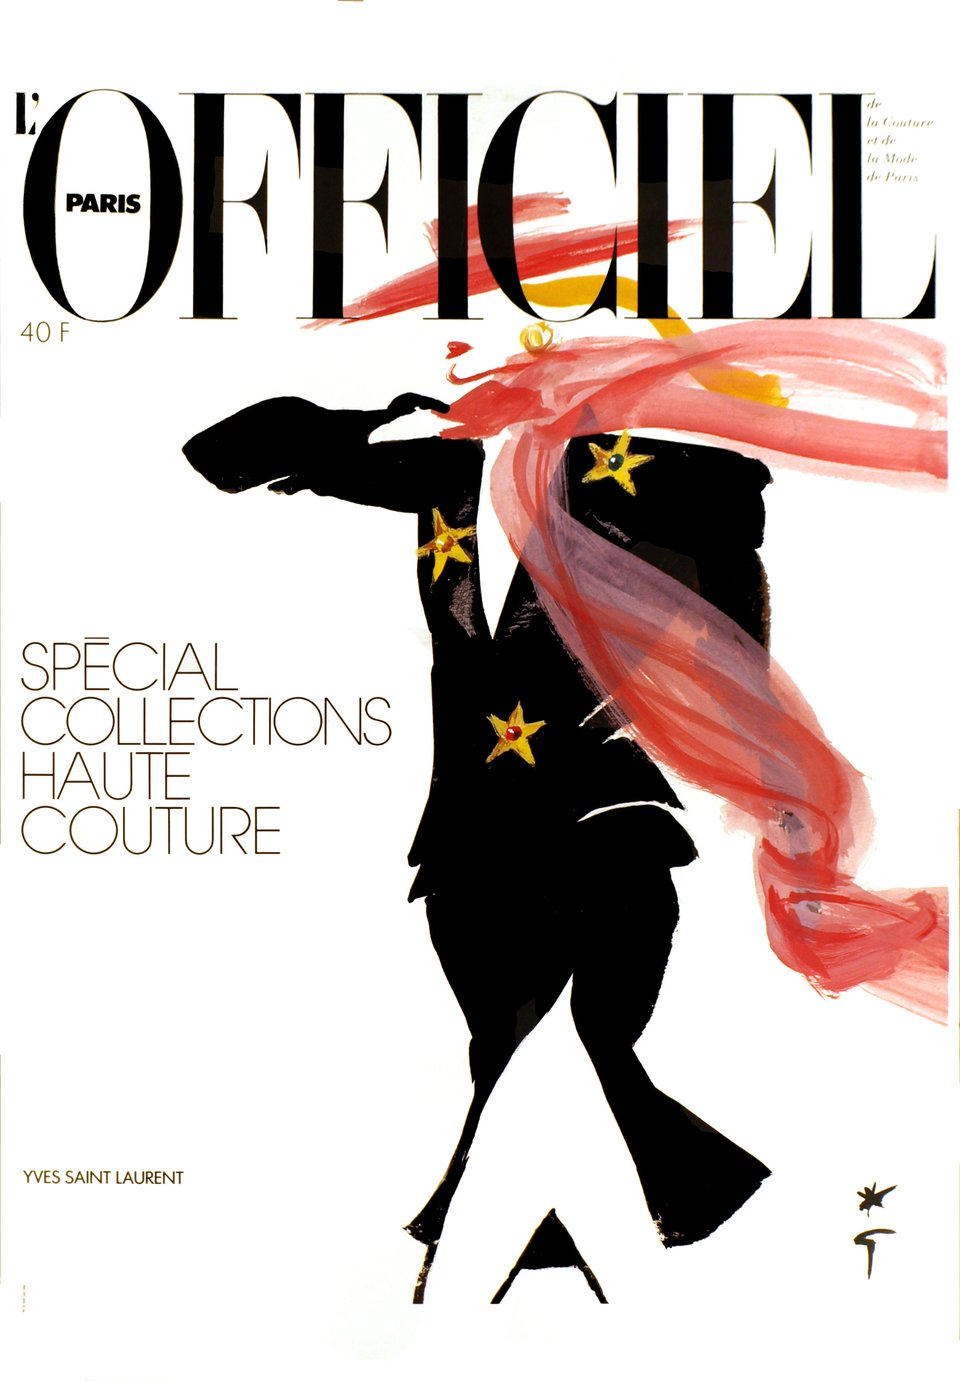 L'Officiel Paris, Spécial collections Haute Couture - Yves Saint Laurent – Vintage poster – René GRUAU – 1989